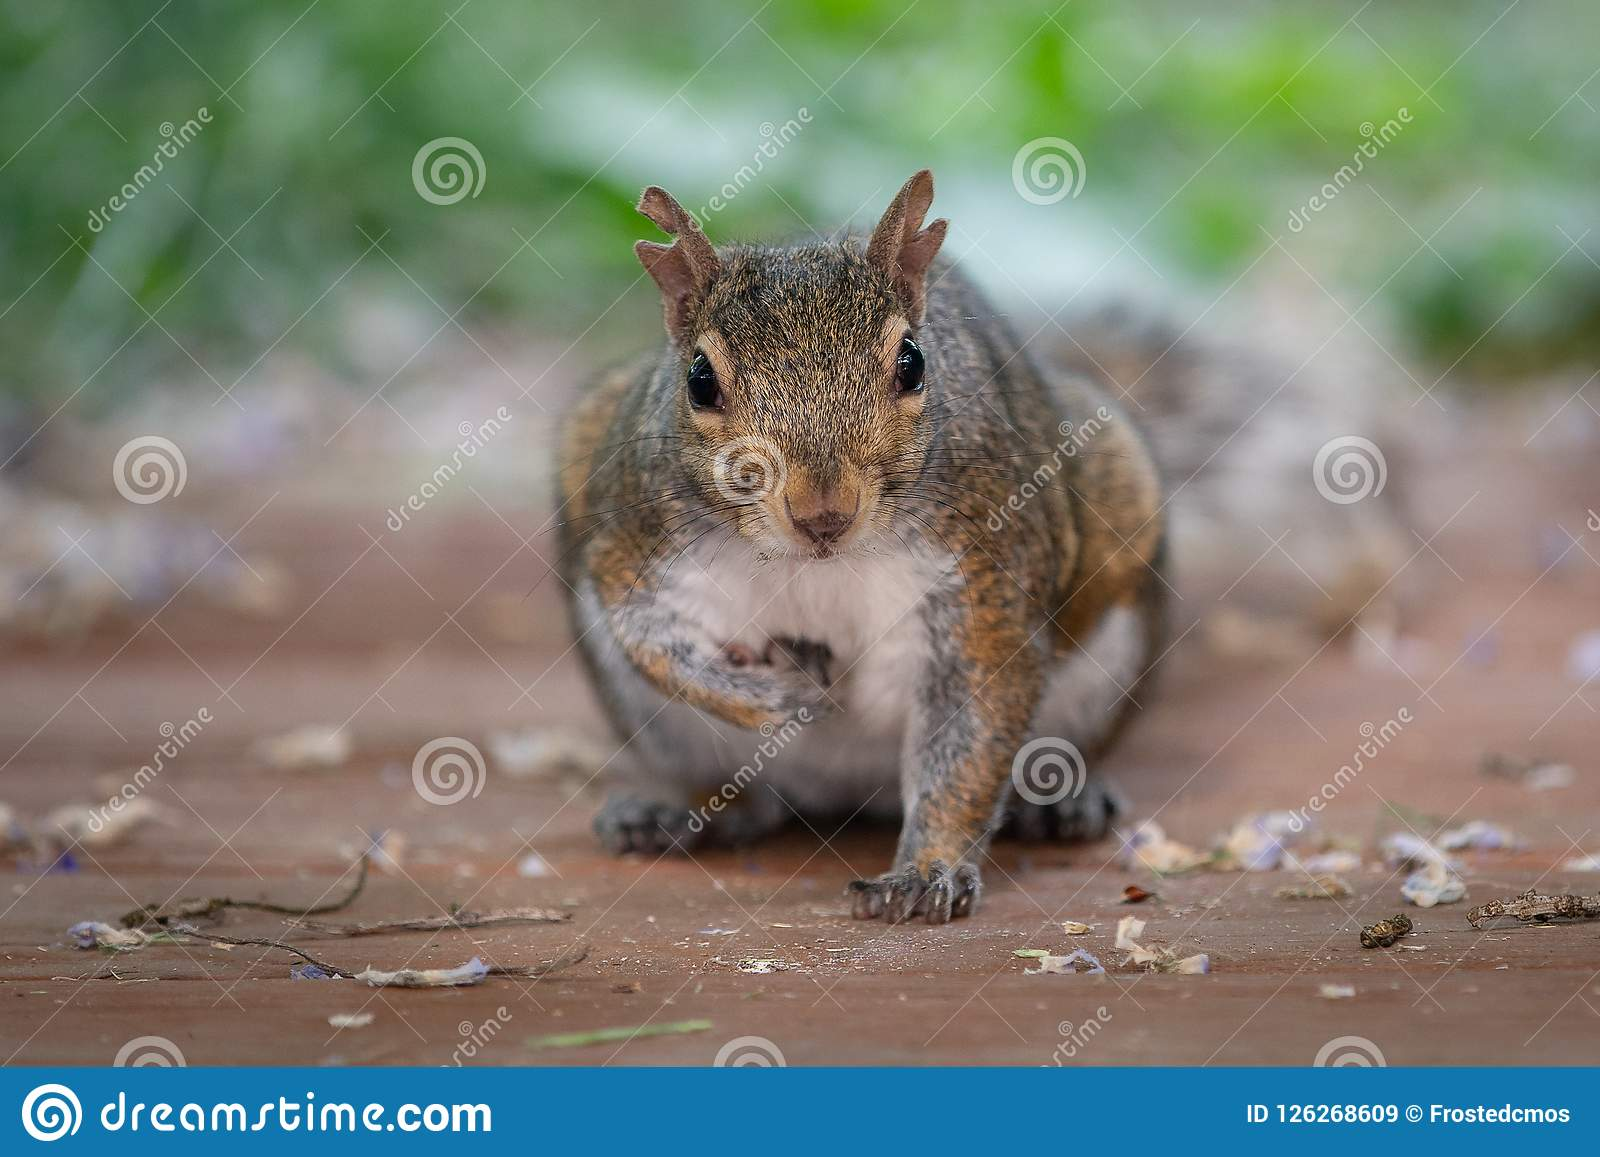 Cute baby brown squirrel on the wooden deck